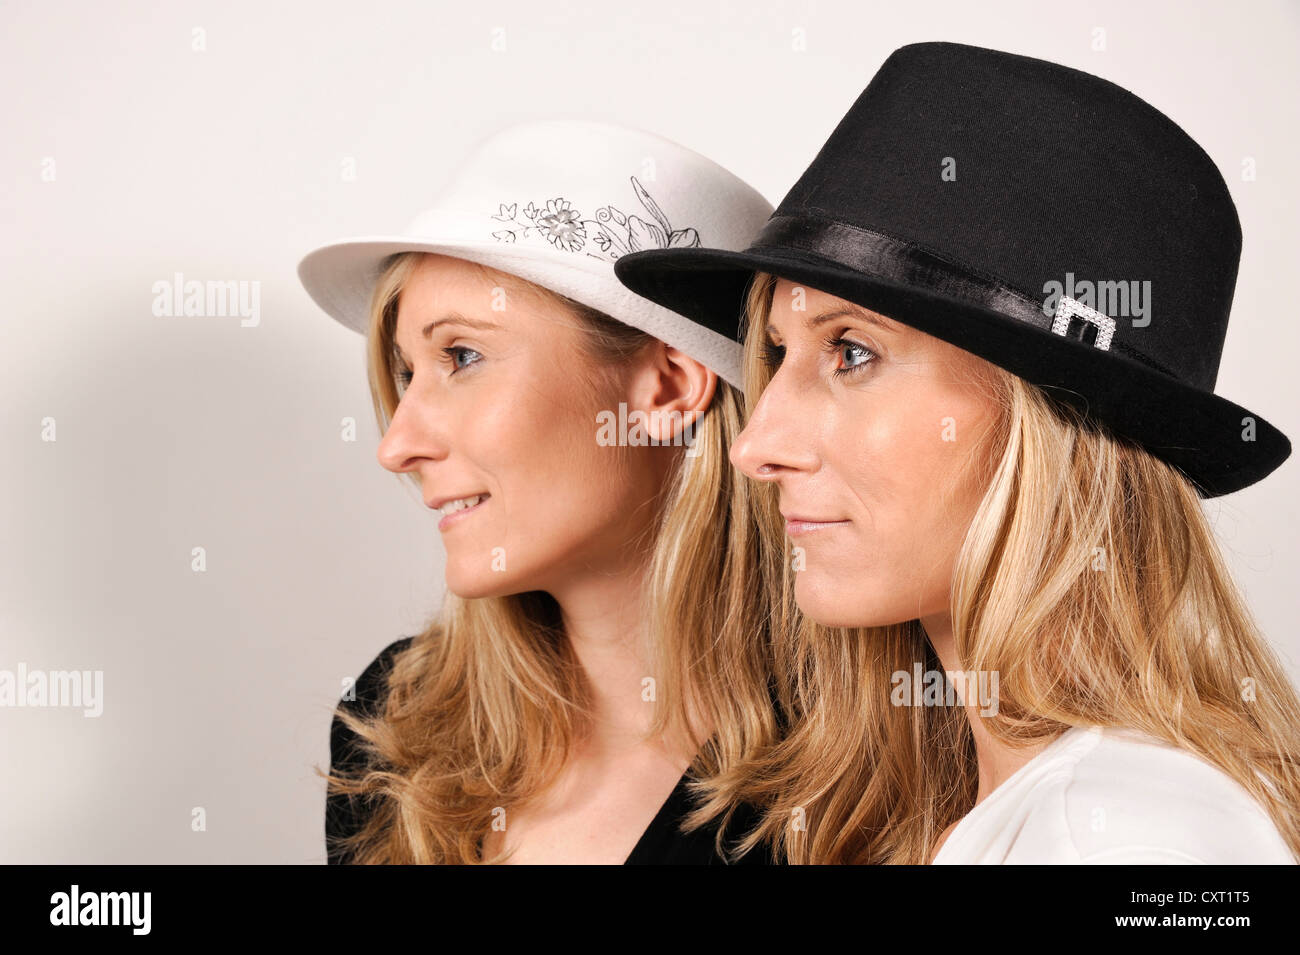 twin sisters wearing hats in black and white in opposite colors to